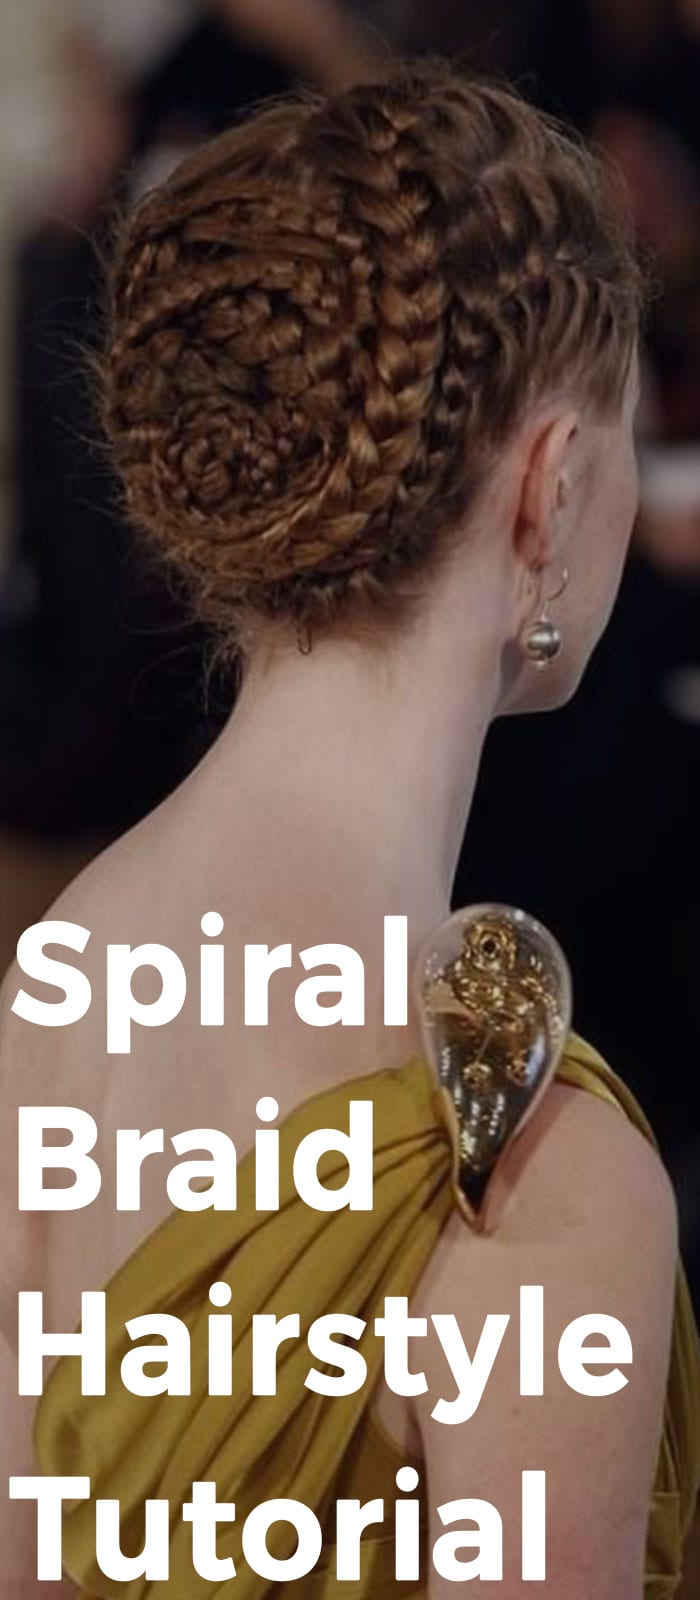 Spiral Braid Hairstyle Tutorial